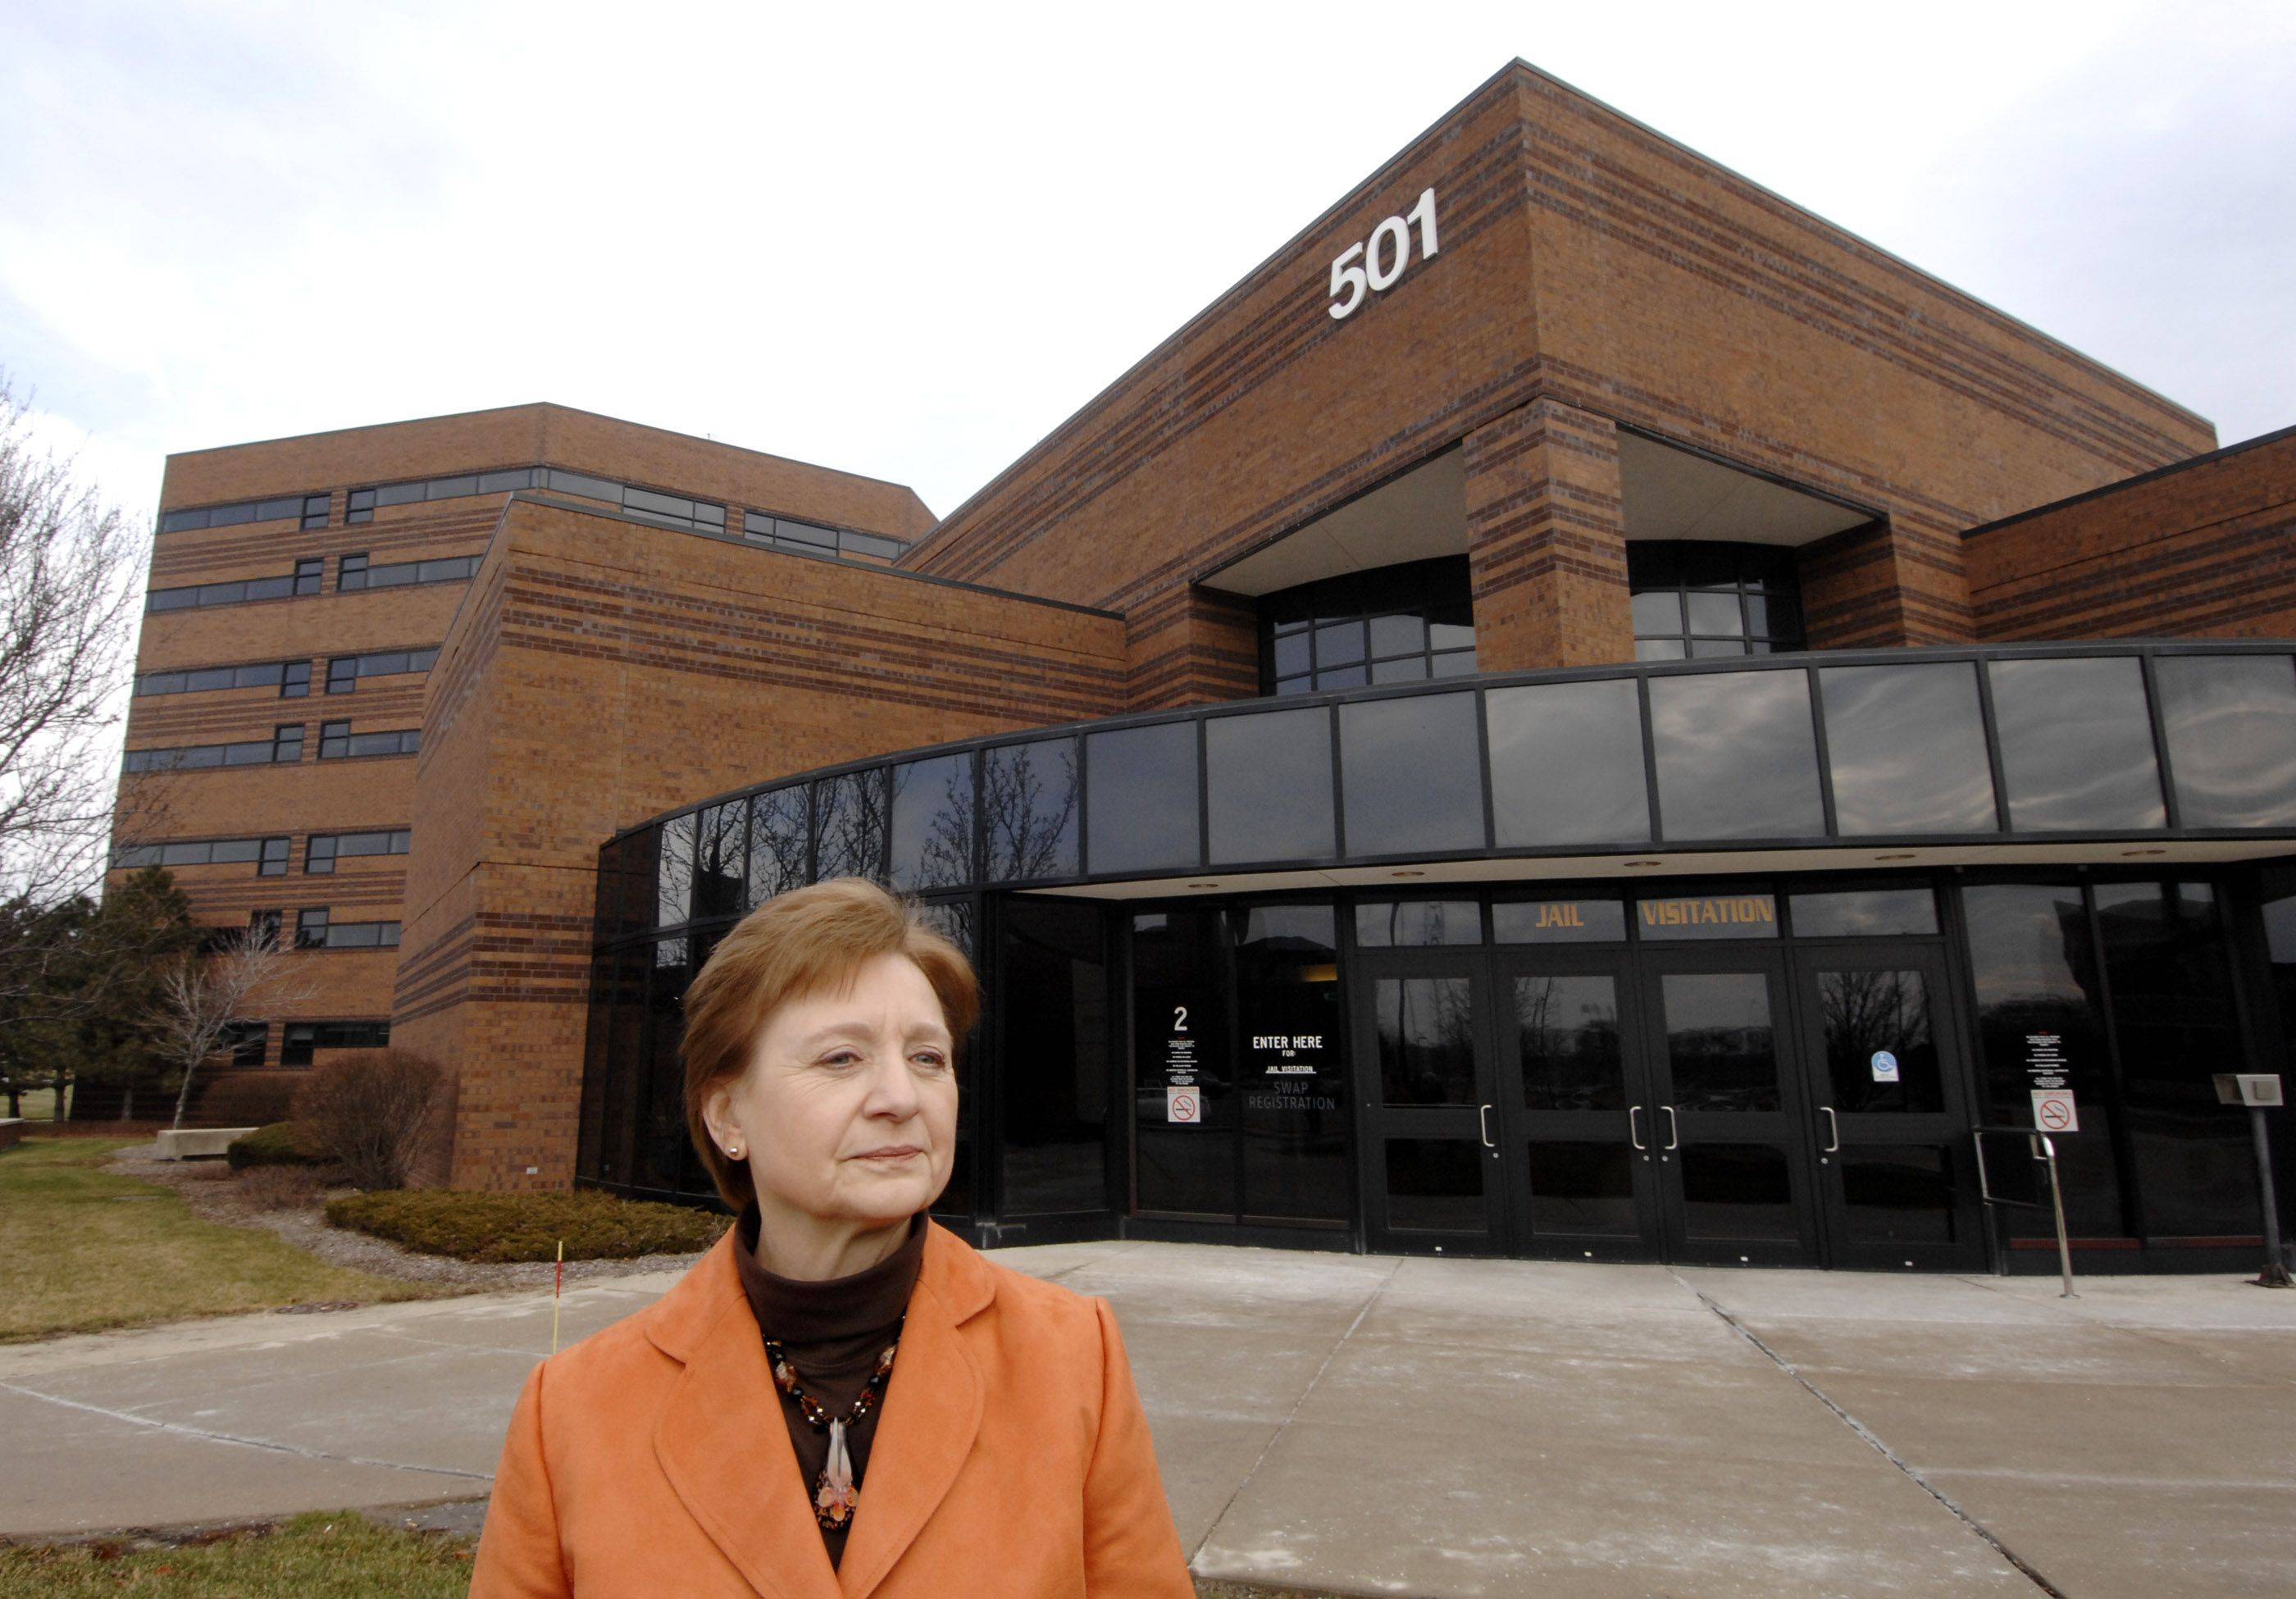 Susan Neustrom stands in front of the DuPage County jail, where JUST has an office to offer education classes, addiction recovery programs and spiritual support to inmates.